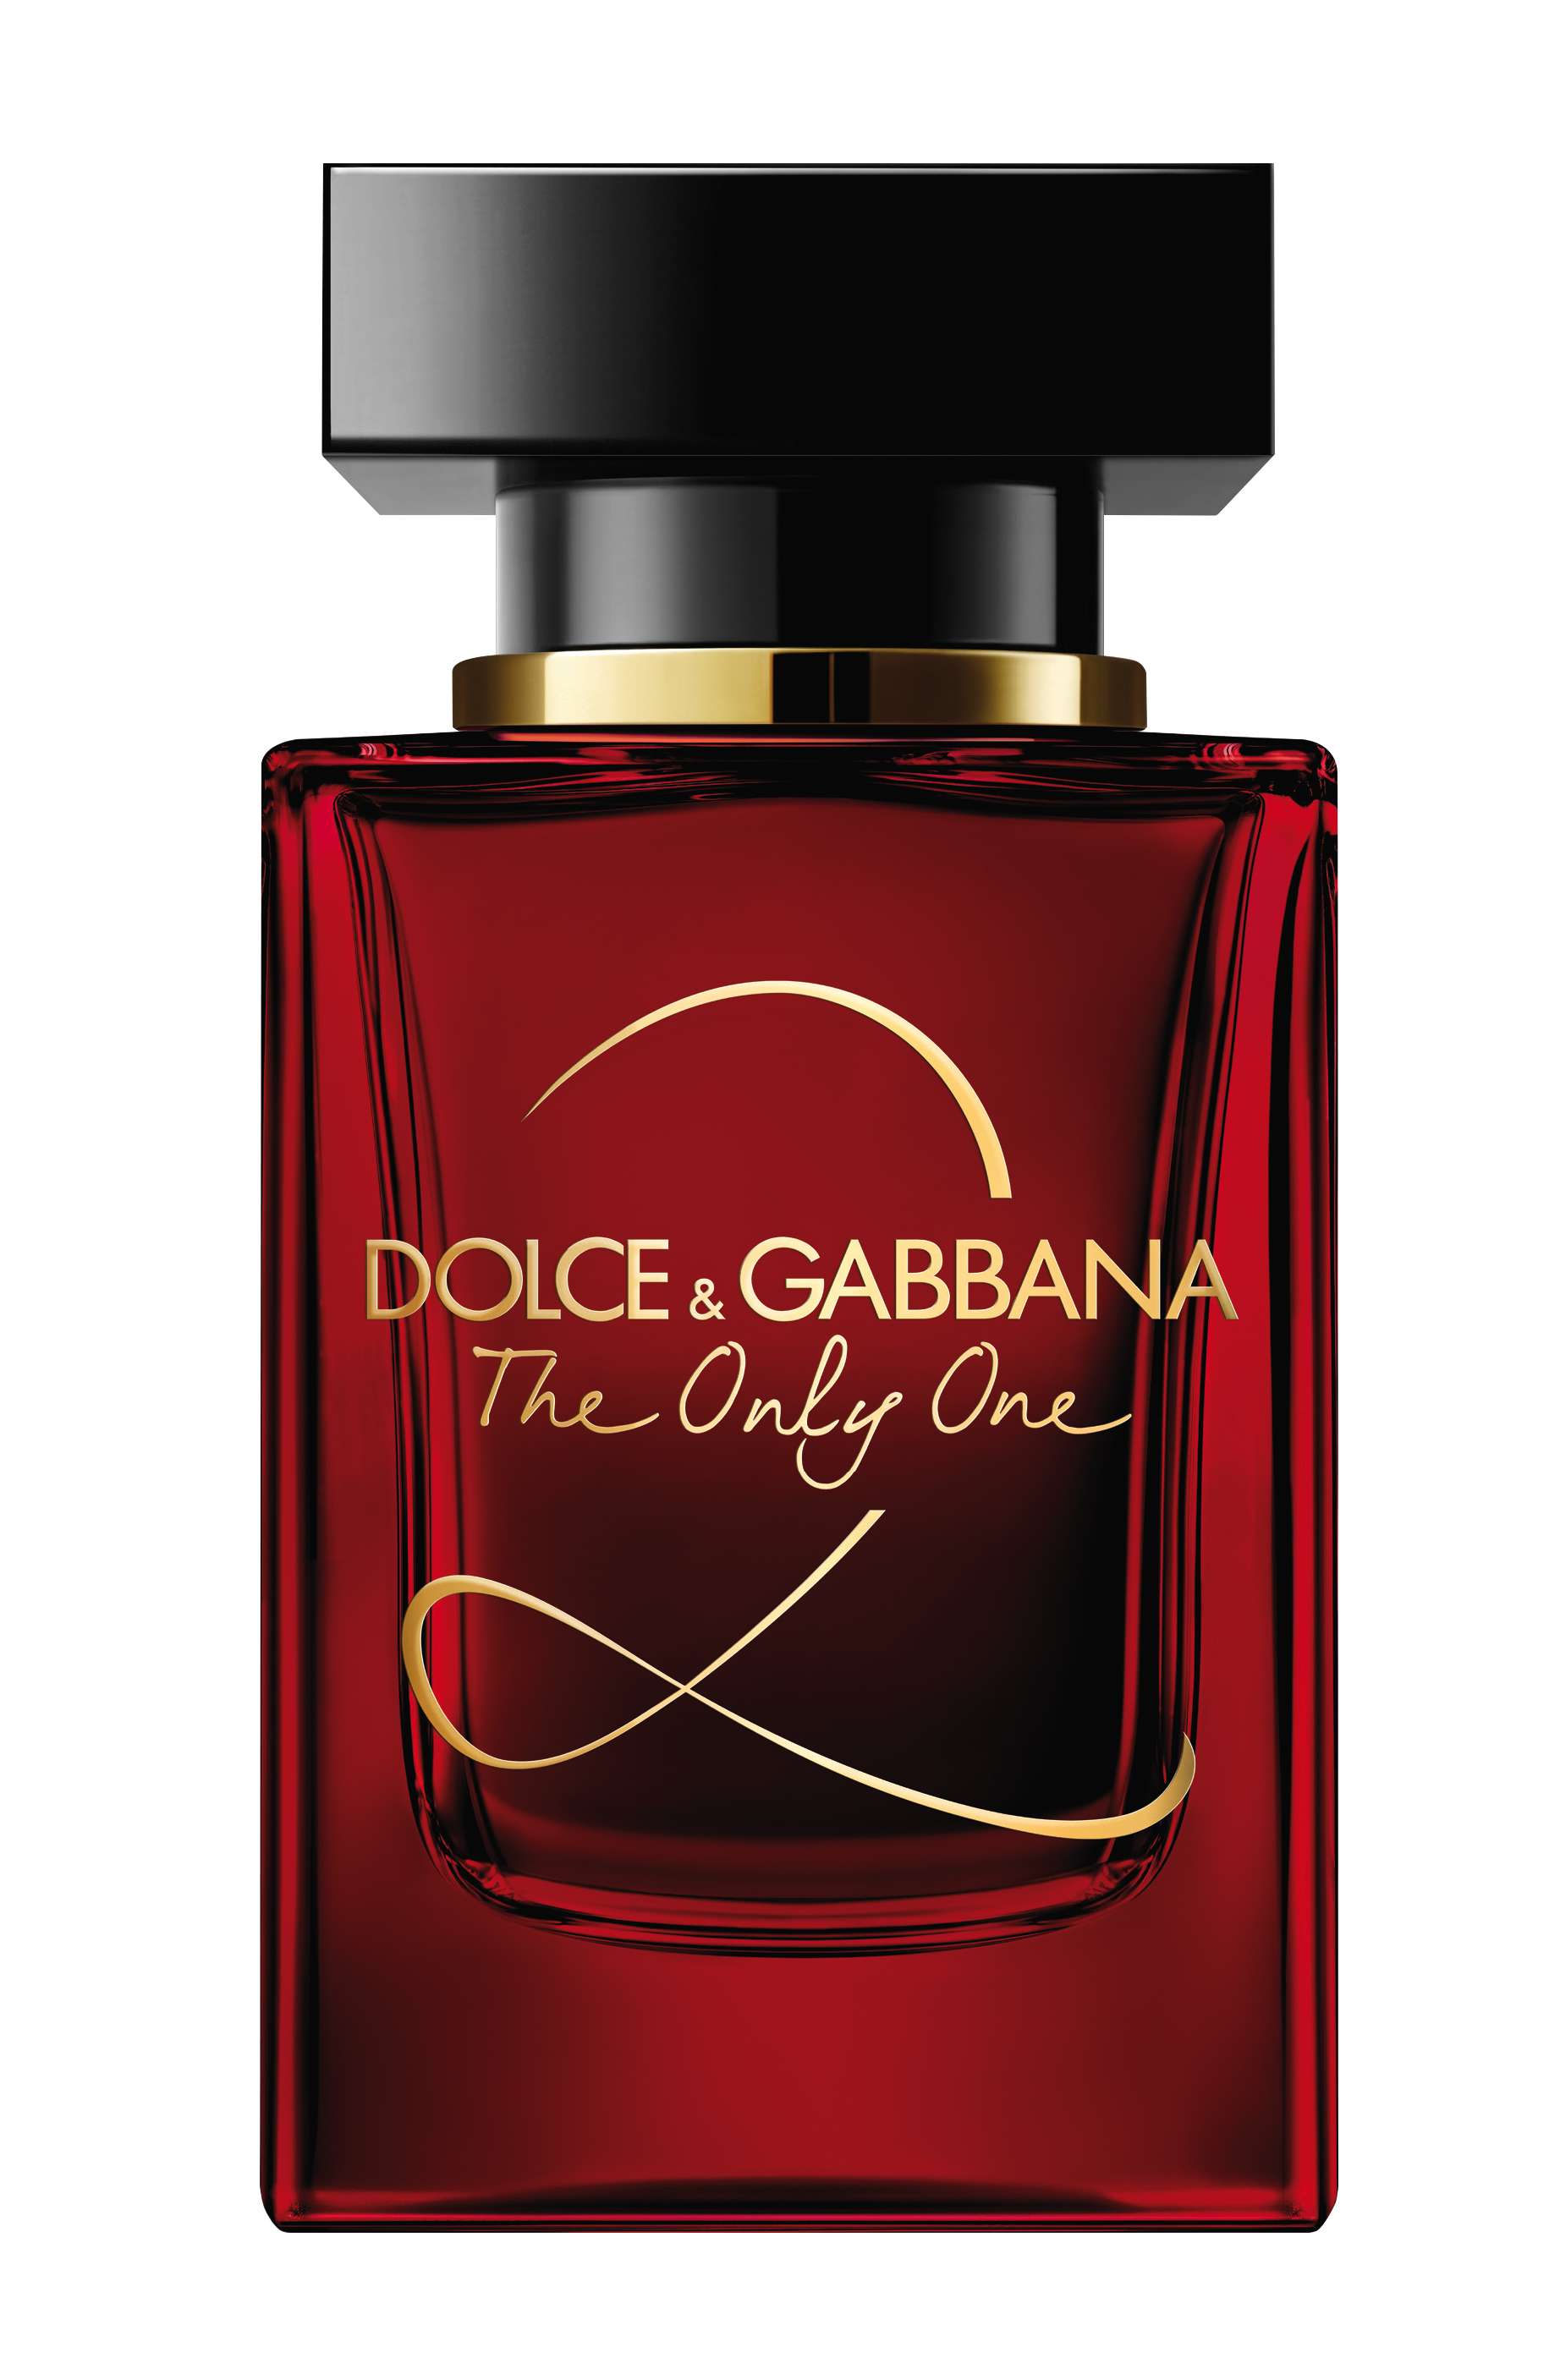 Dolce & Gabbana The Only One 2  is a scent of love and seduction, with notes of red berries, red rose, patchouli and amber woods.